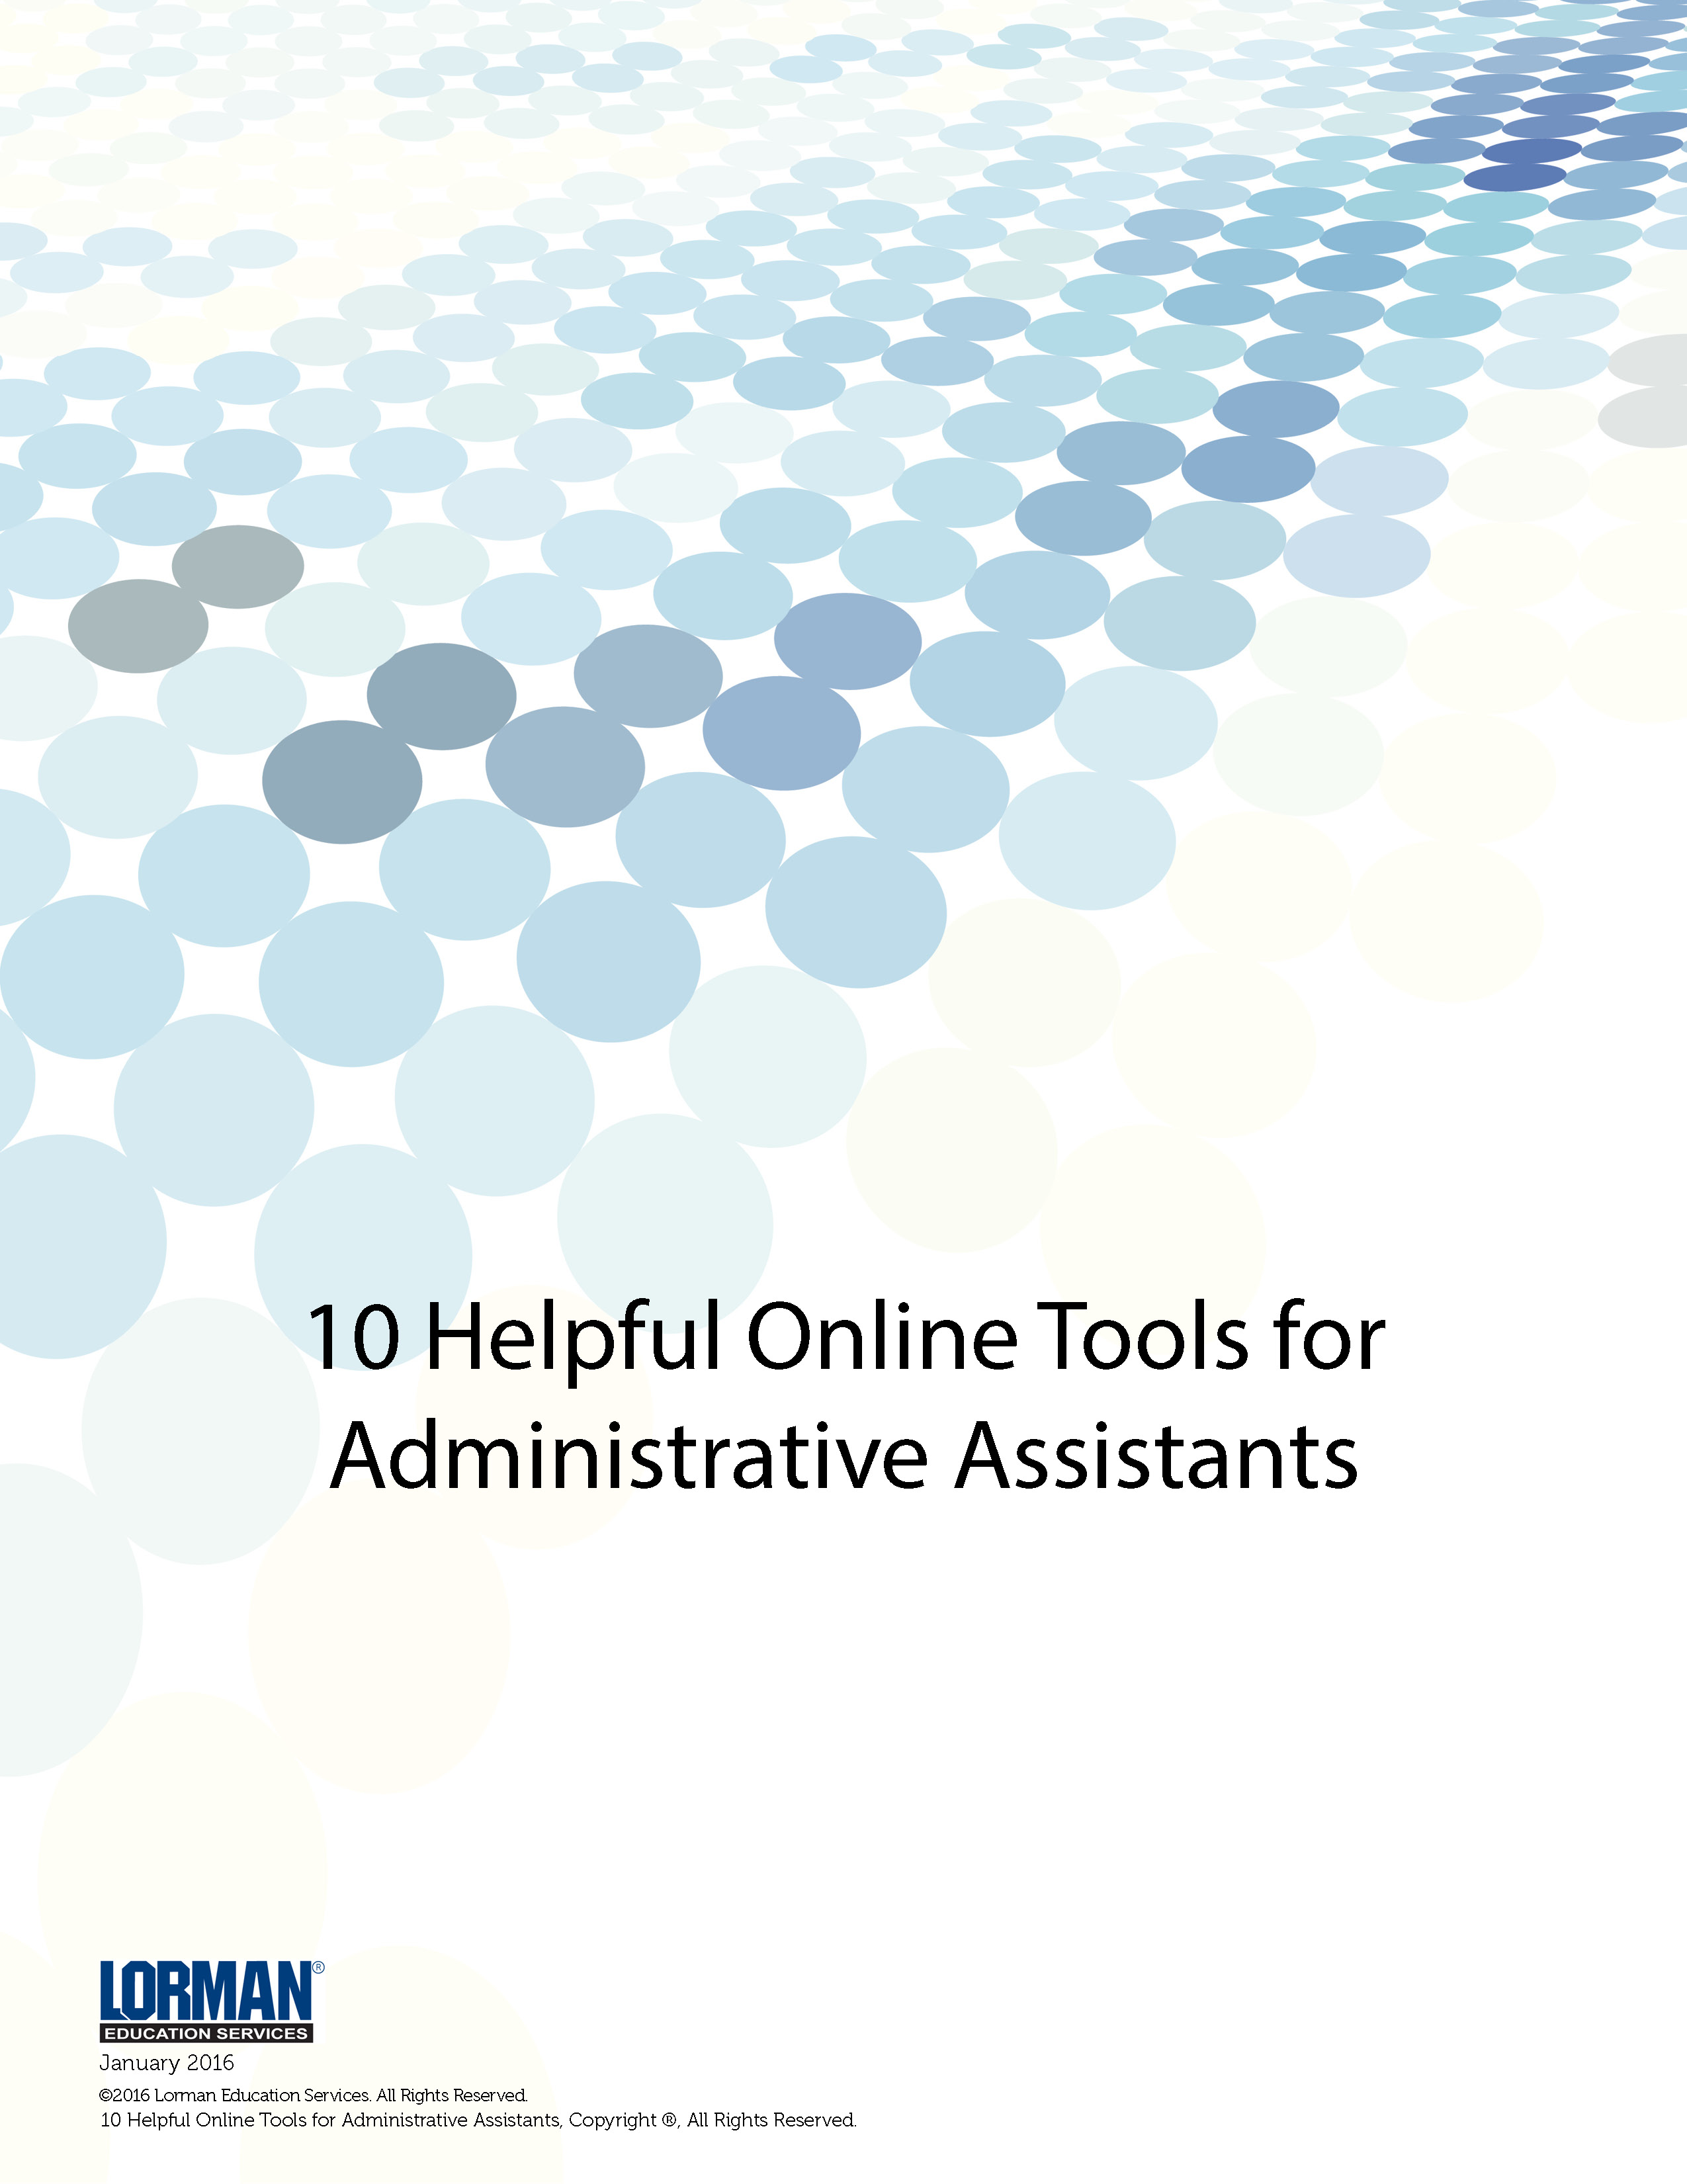 10 Helpful Online Tools for Administrative Assistants